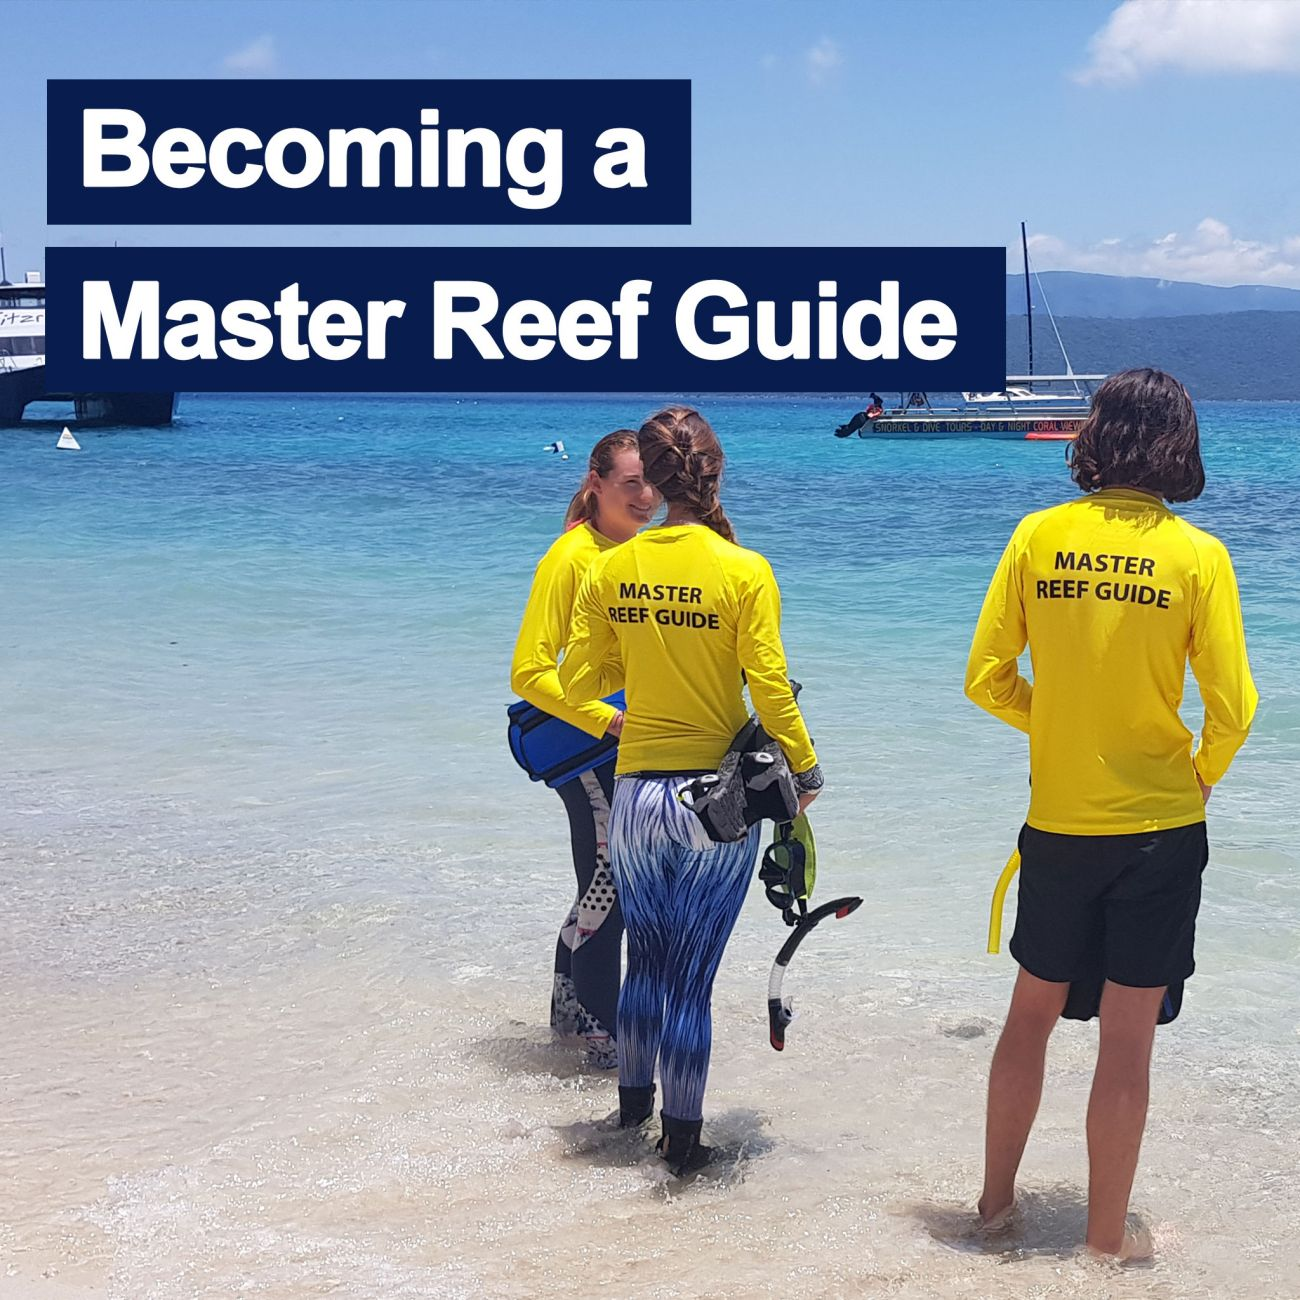 Becoming a Master Reef Guide